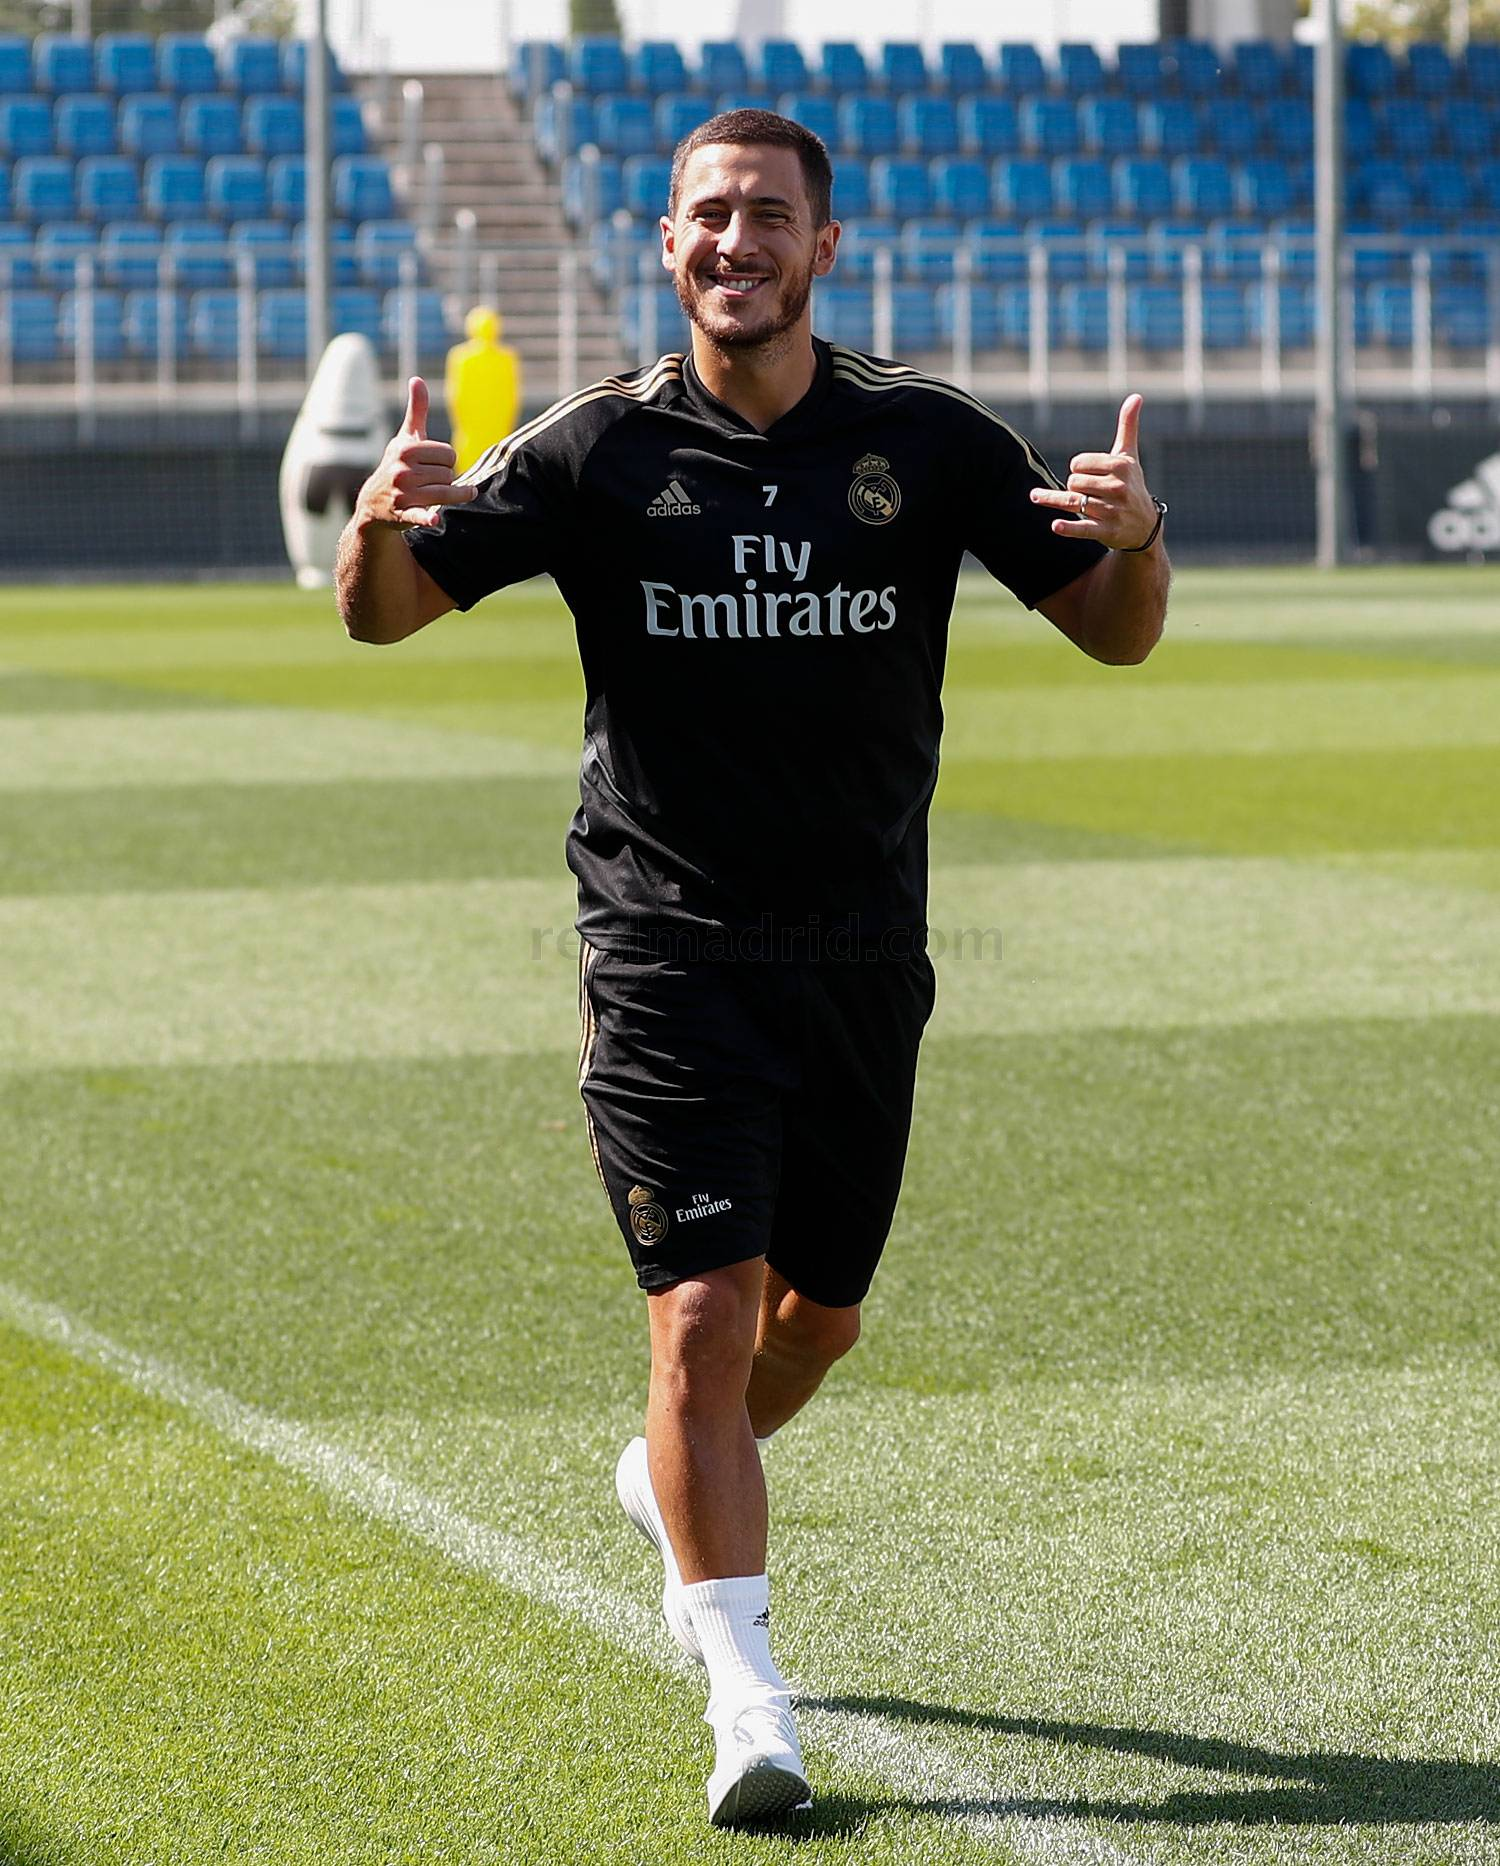 Real Madrid - Entrenamiento del Real Madrid  - 30-08-2019